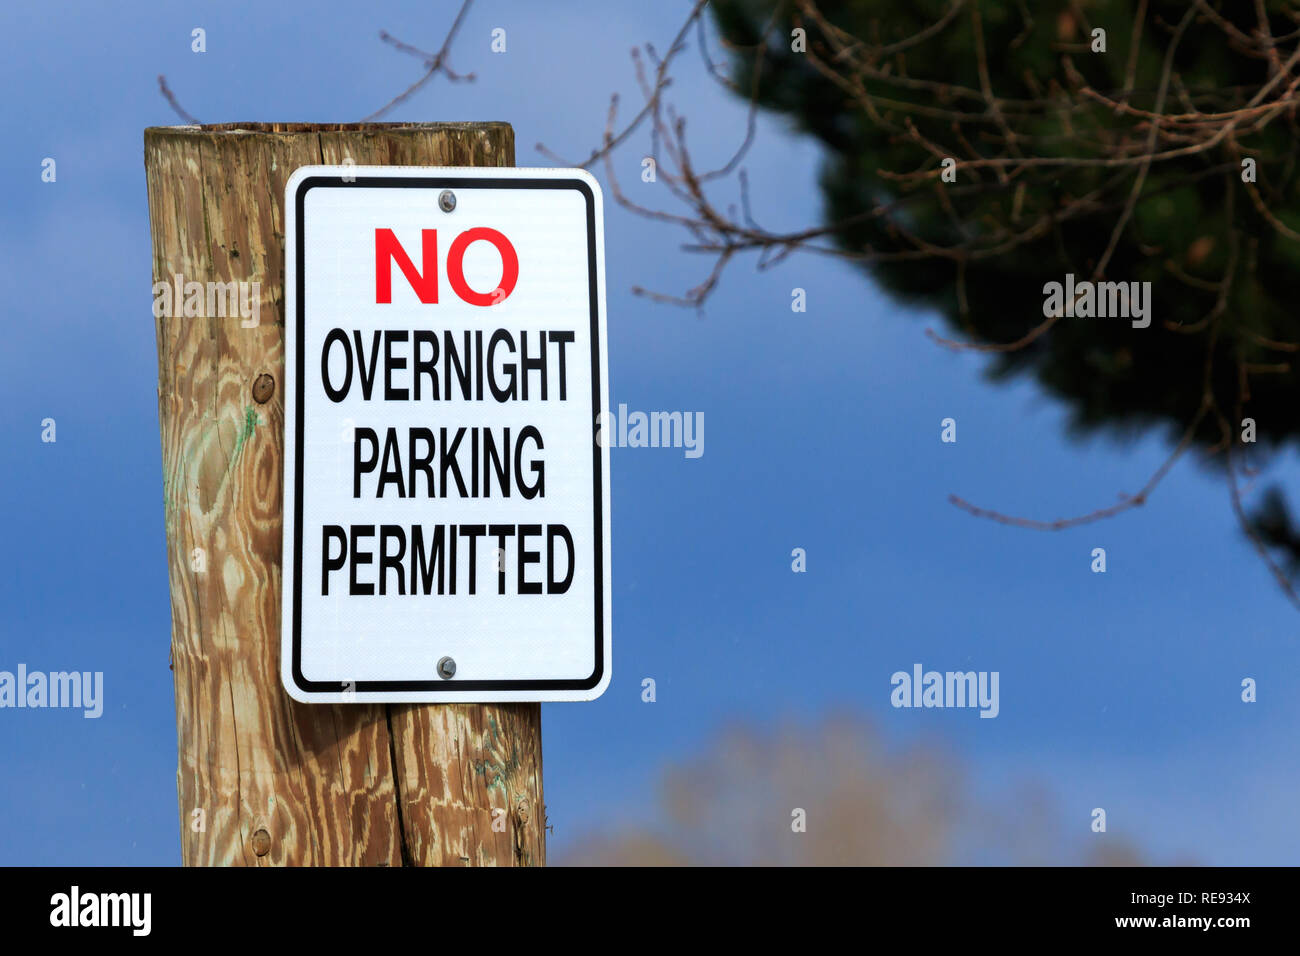 No Overnight Parking permitted sign - Stock Image